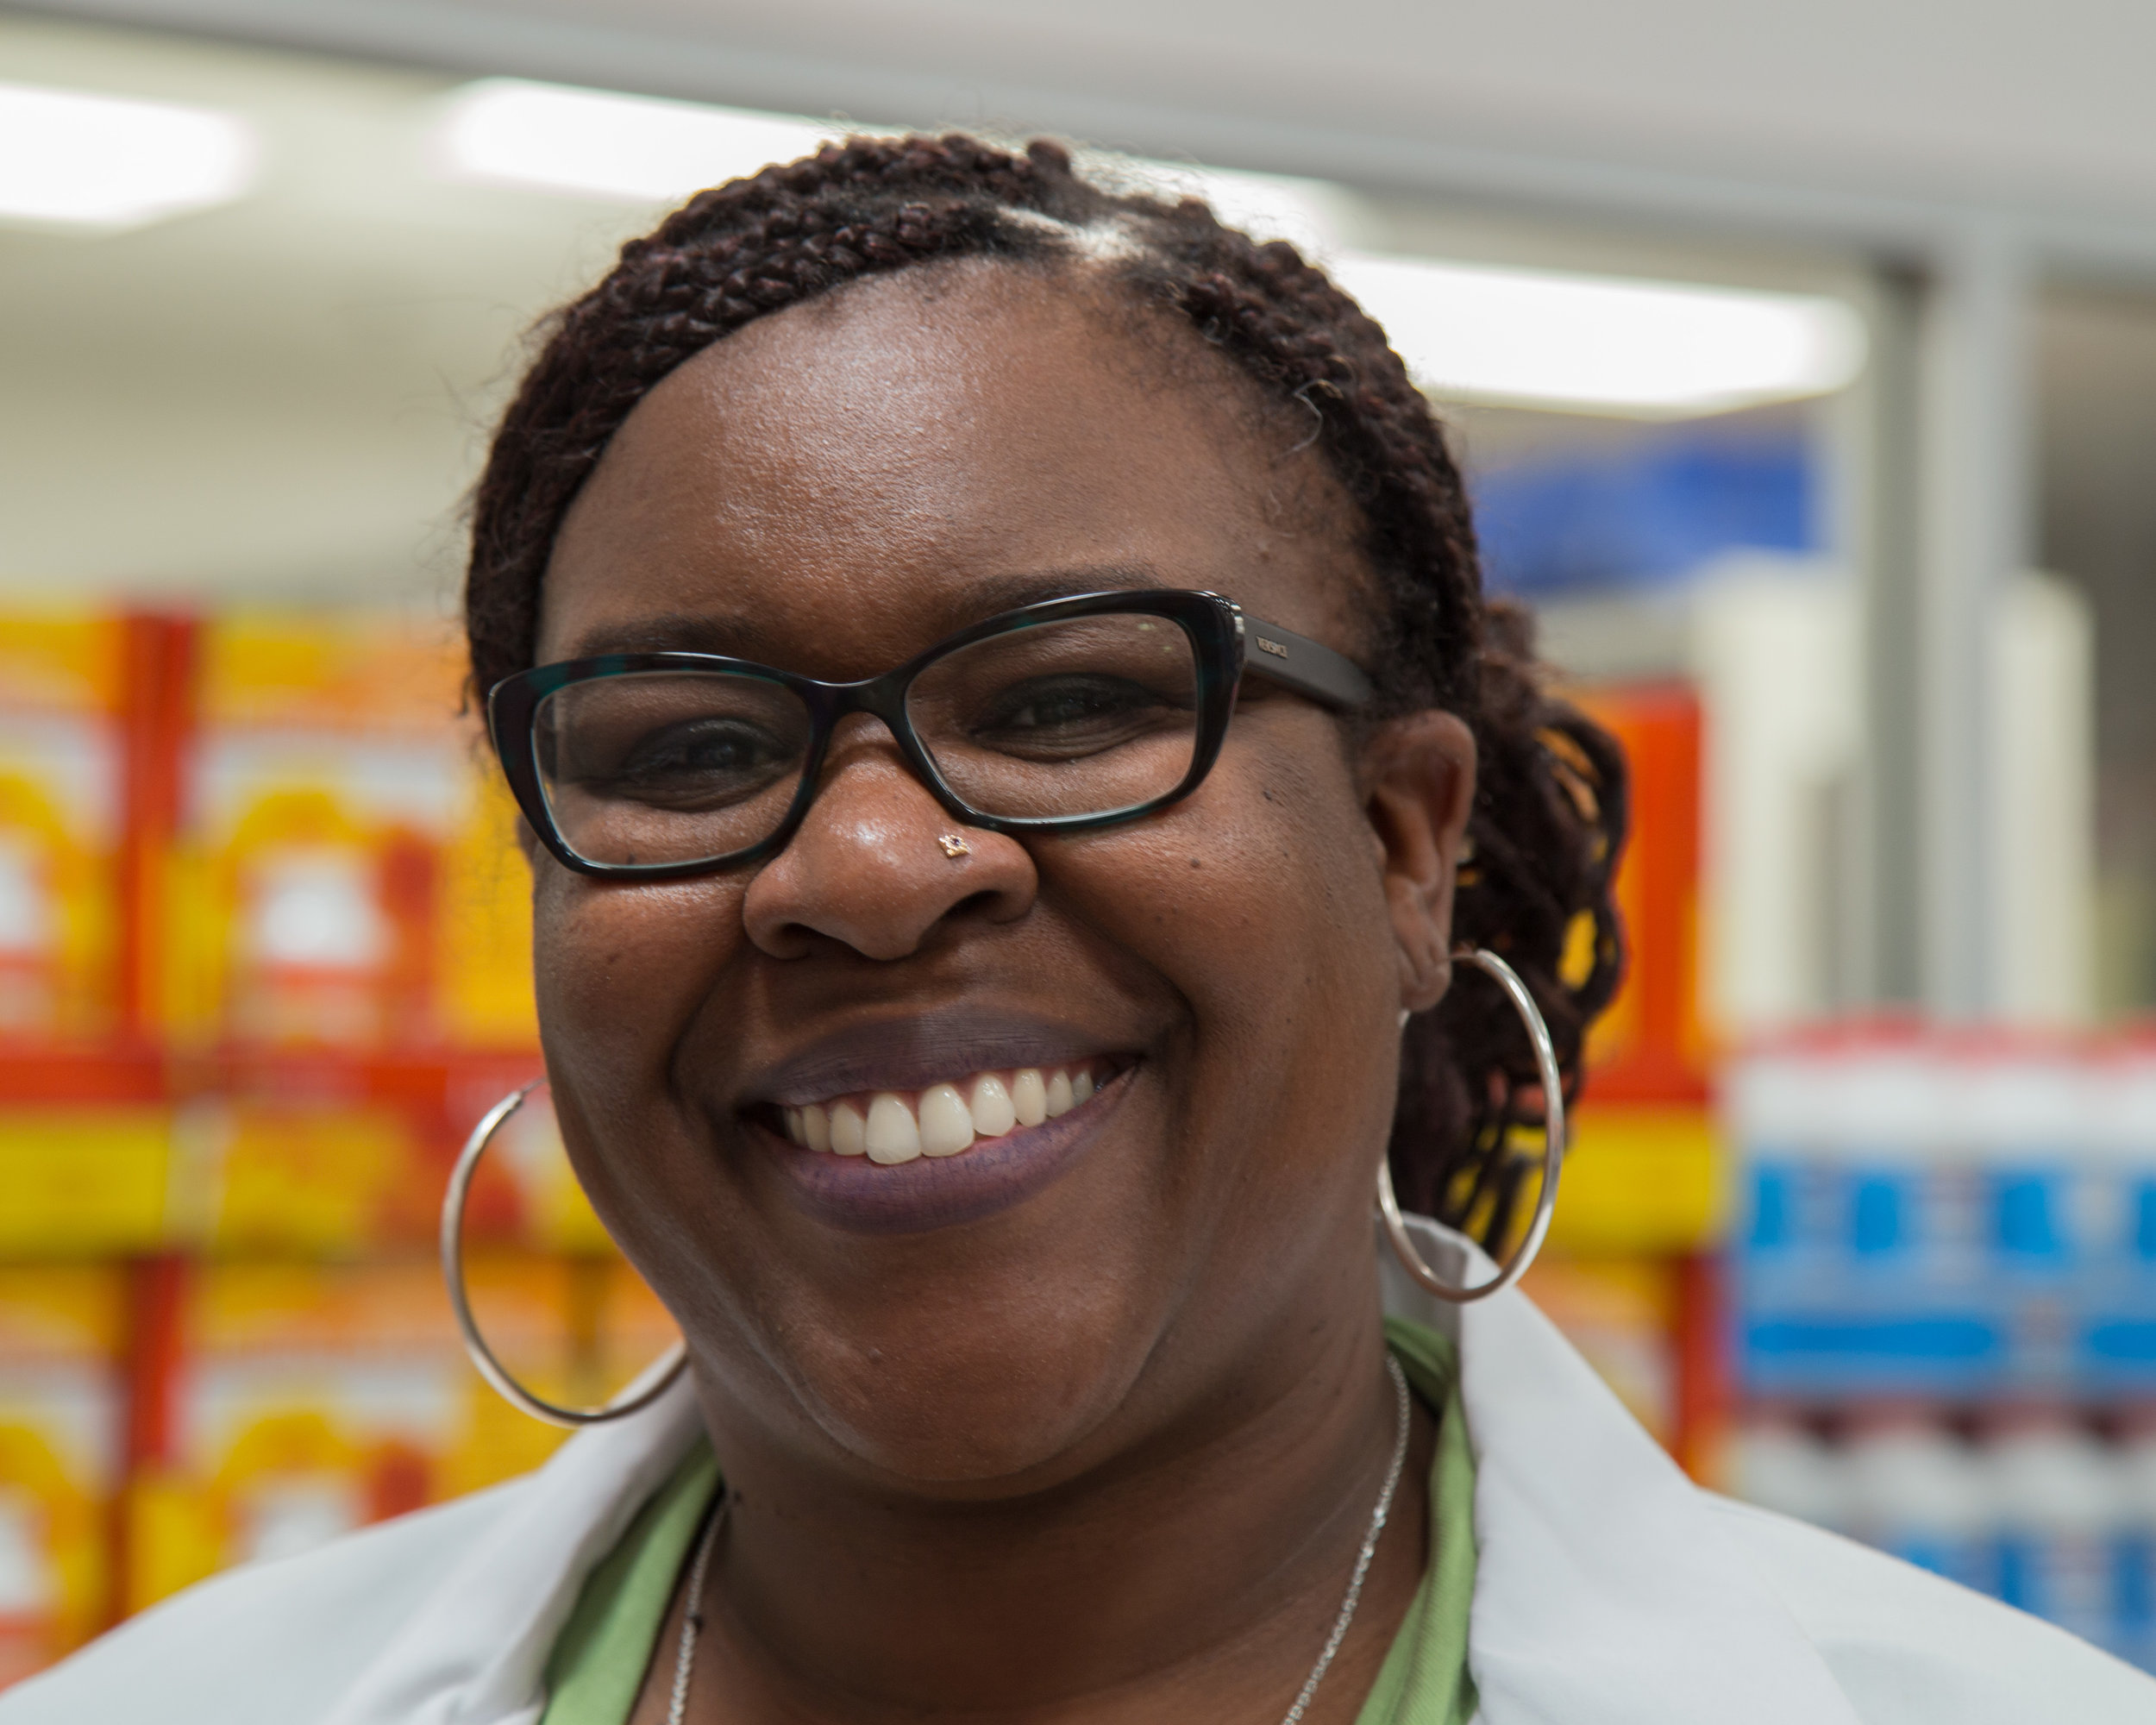 With a B.S. in Biology and Ph.D. in Pharmacy, Eboni is a Pharmacist in Santa Cruz. One day she plans to return to school to finish a Master's Degree in public health.